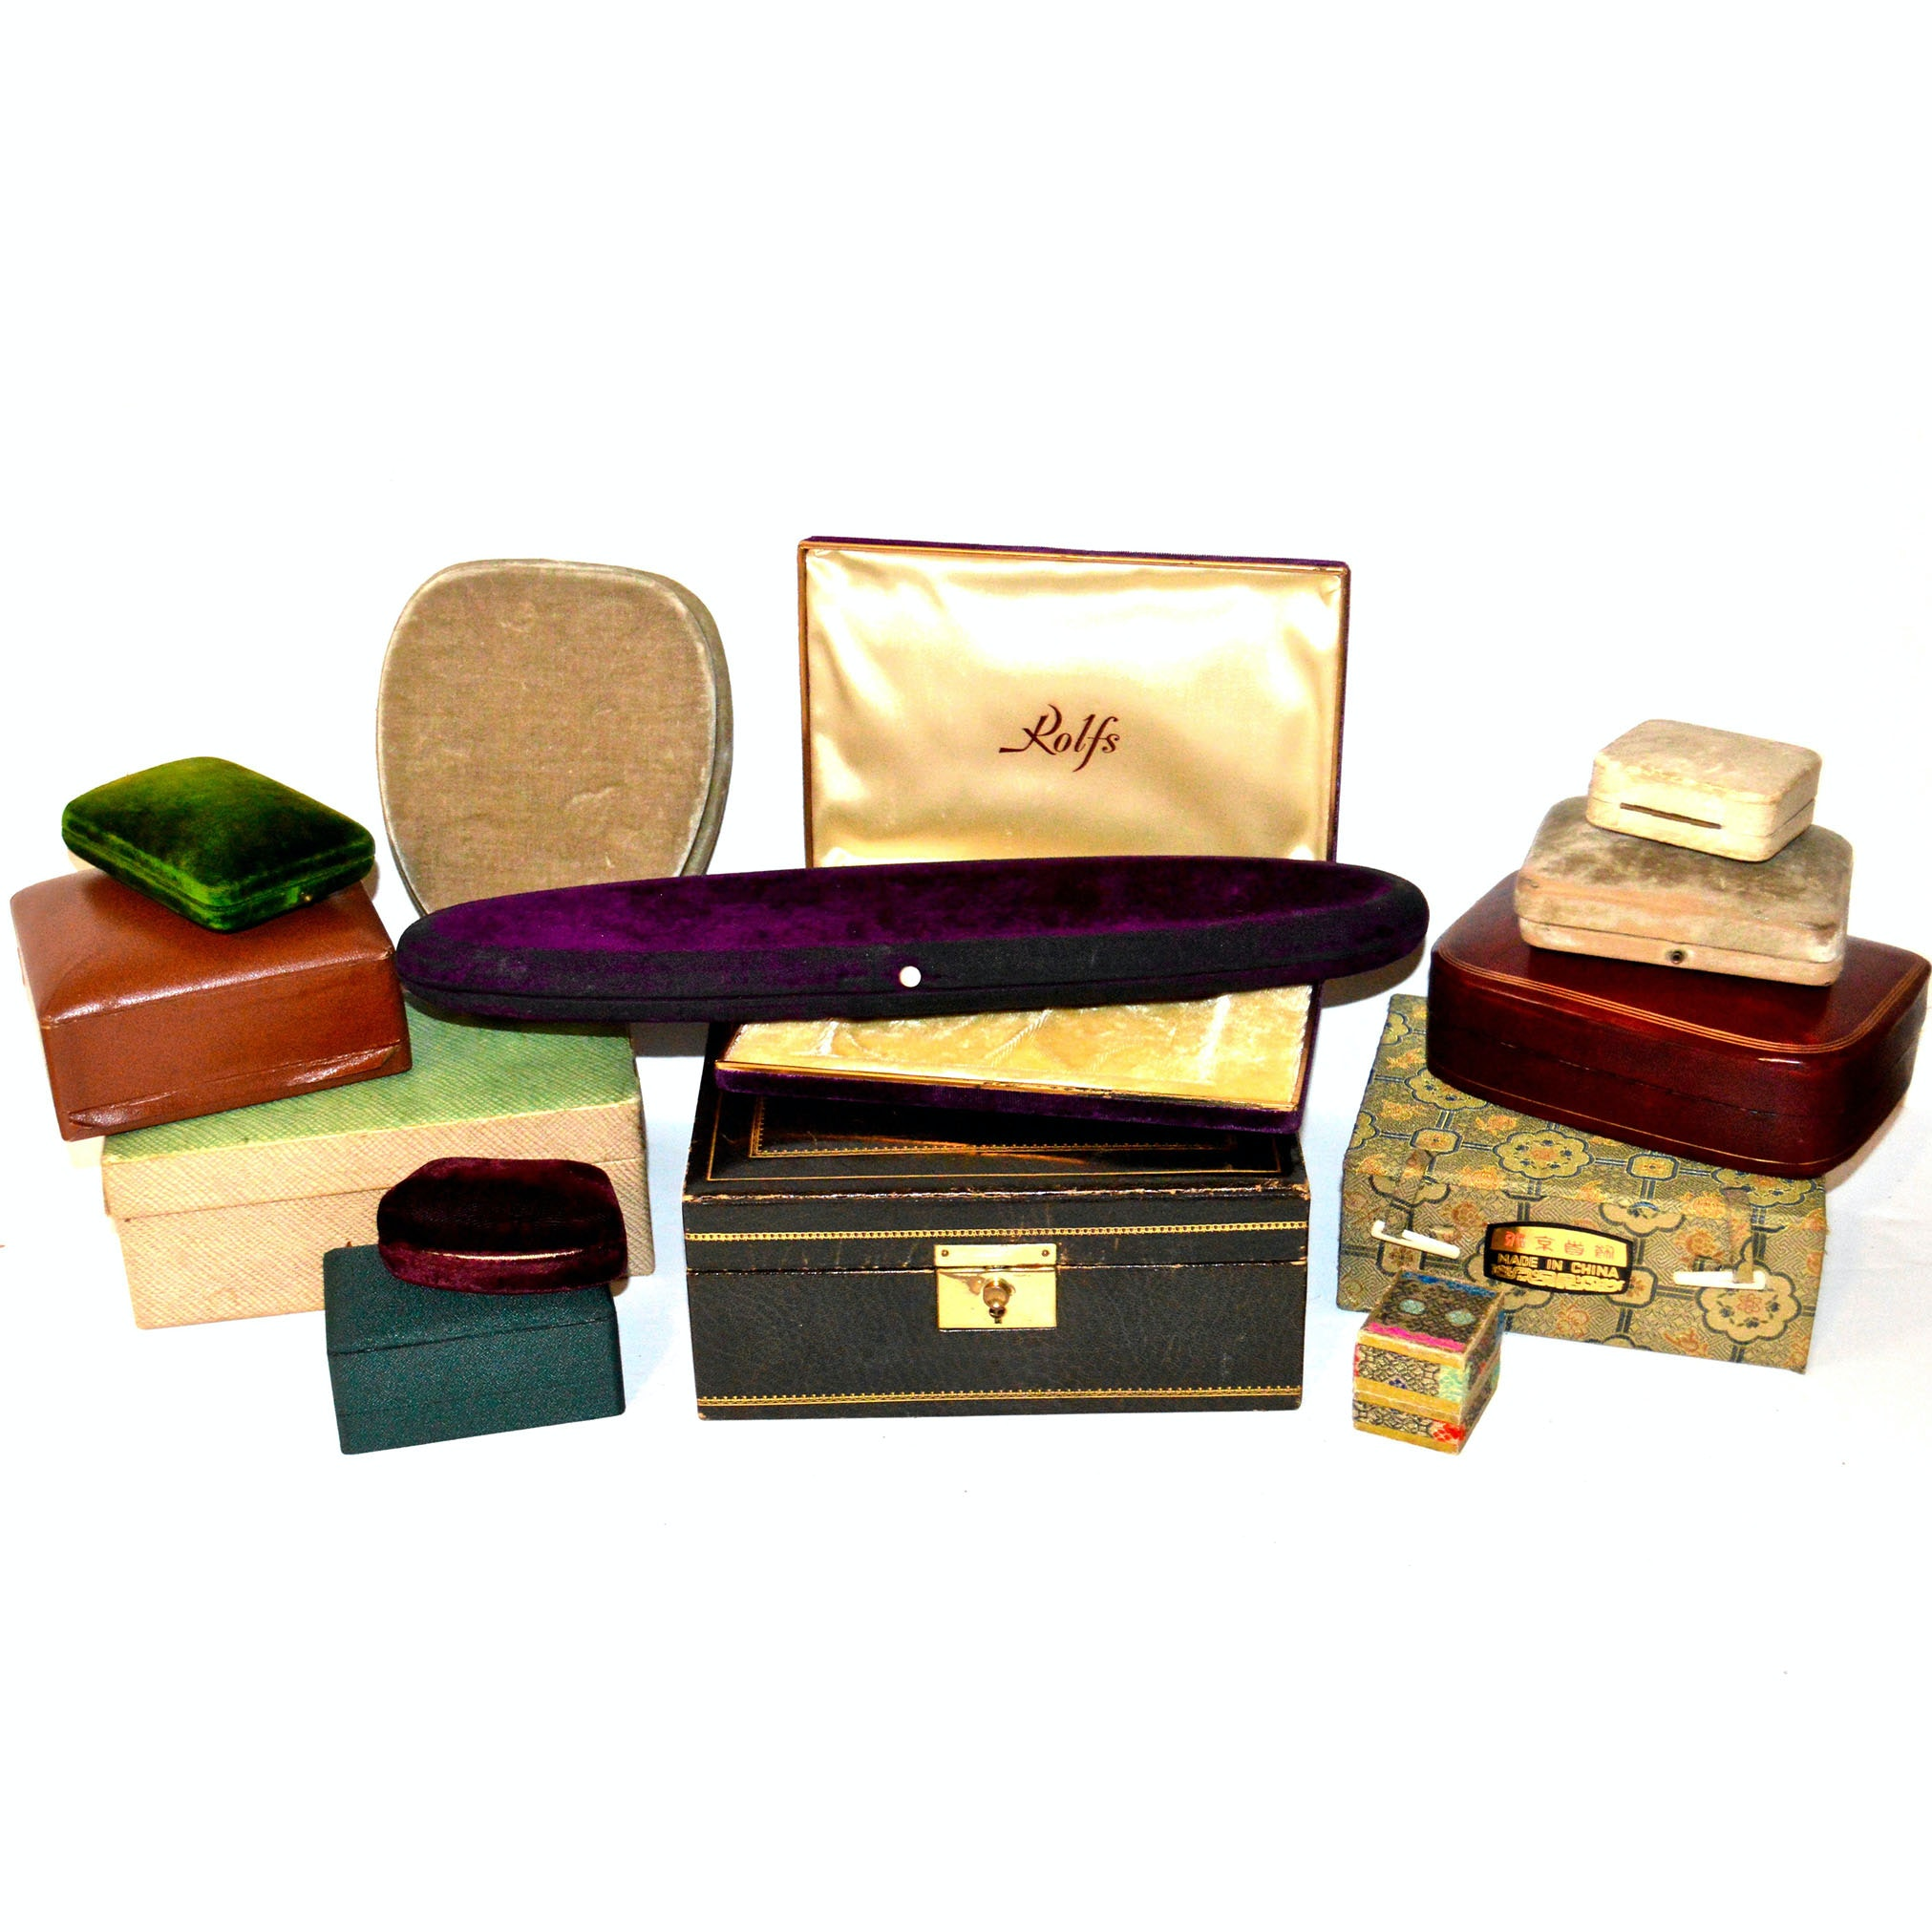 Vintage Department Store and Designer Jewelry Boxes, Featuring Gucci